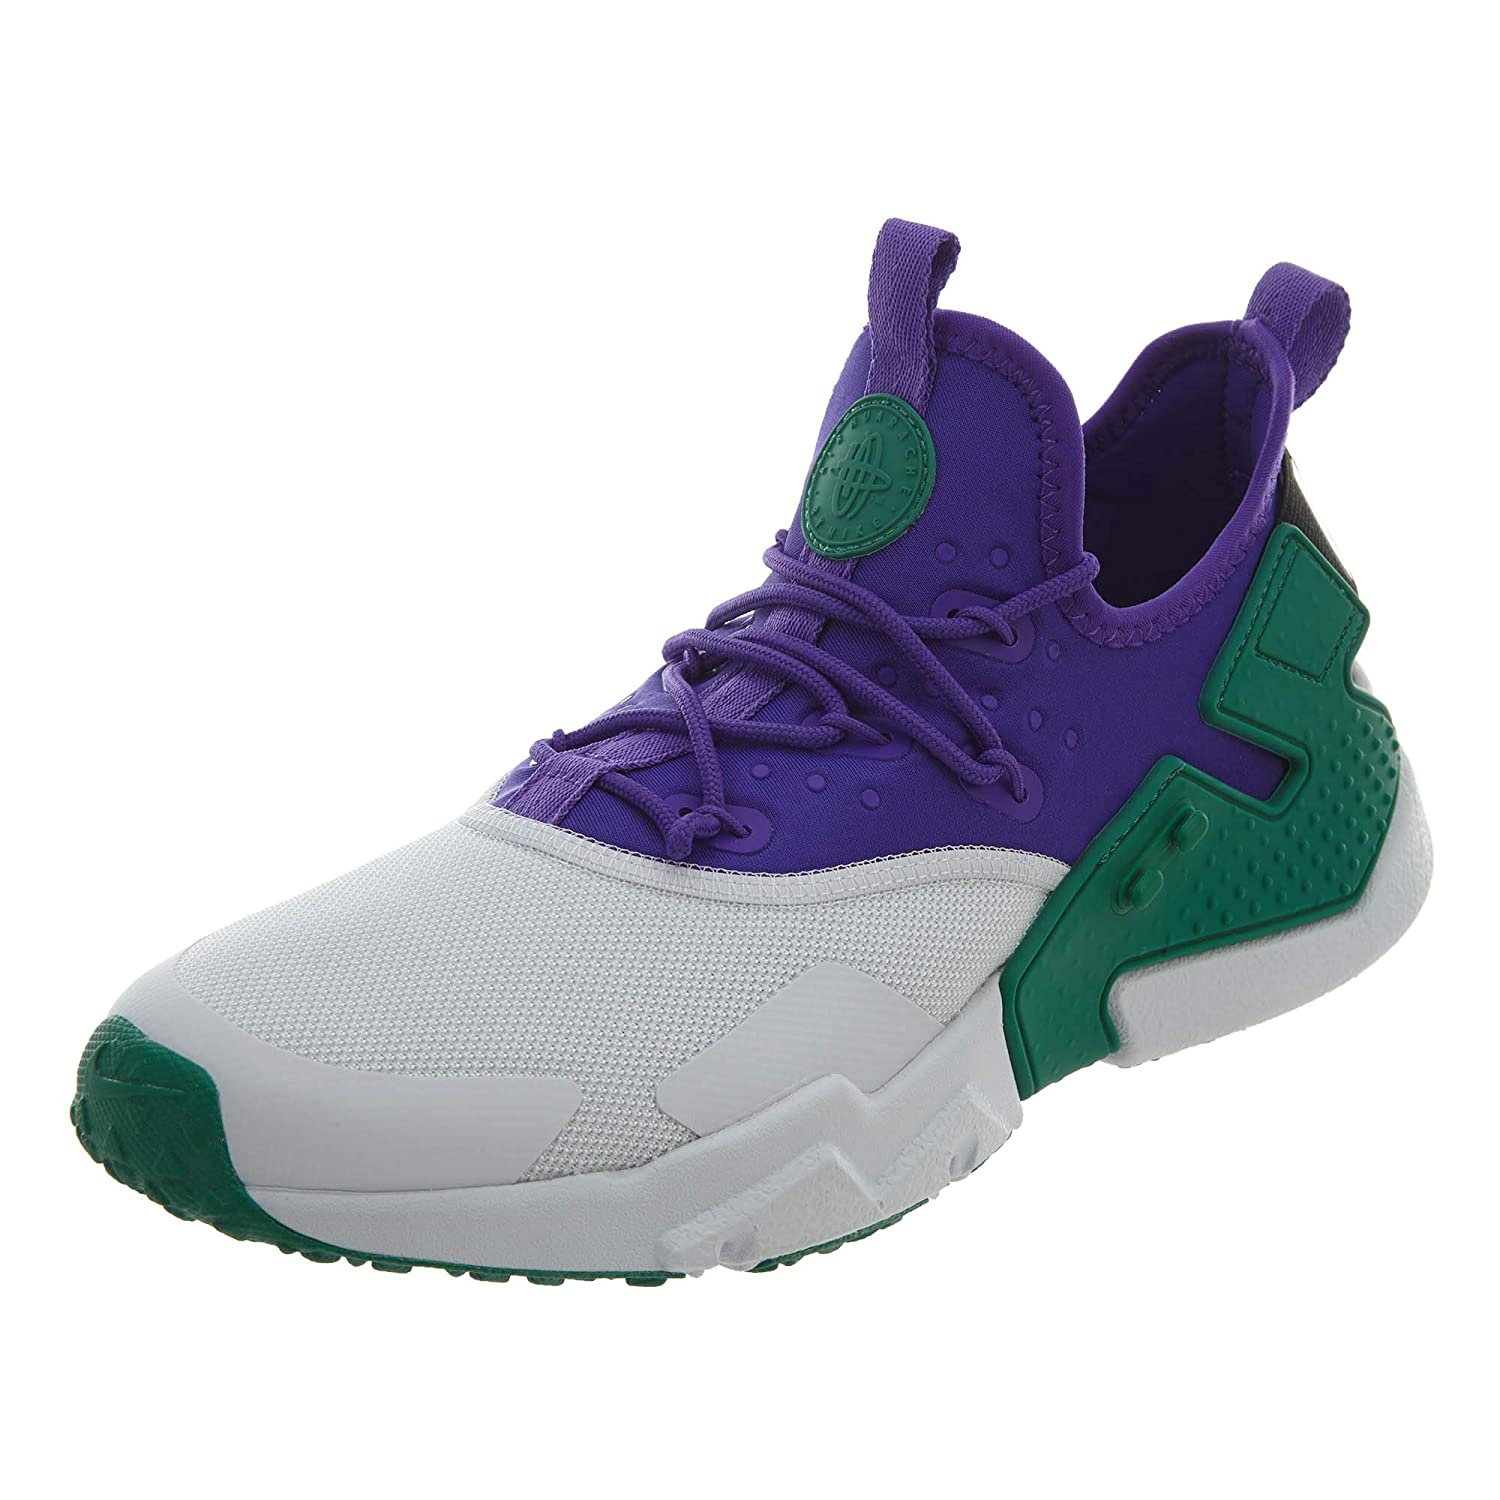 Nike Men's Air Huarache Drift B07GDVNMYJ Fierce Purple/White-black-green Noise 10.5 M US